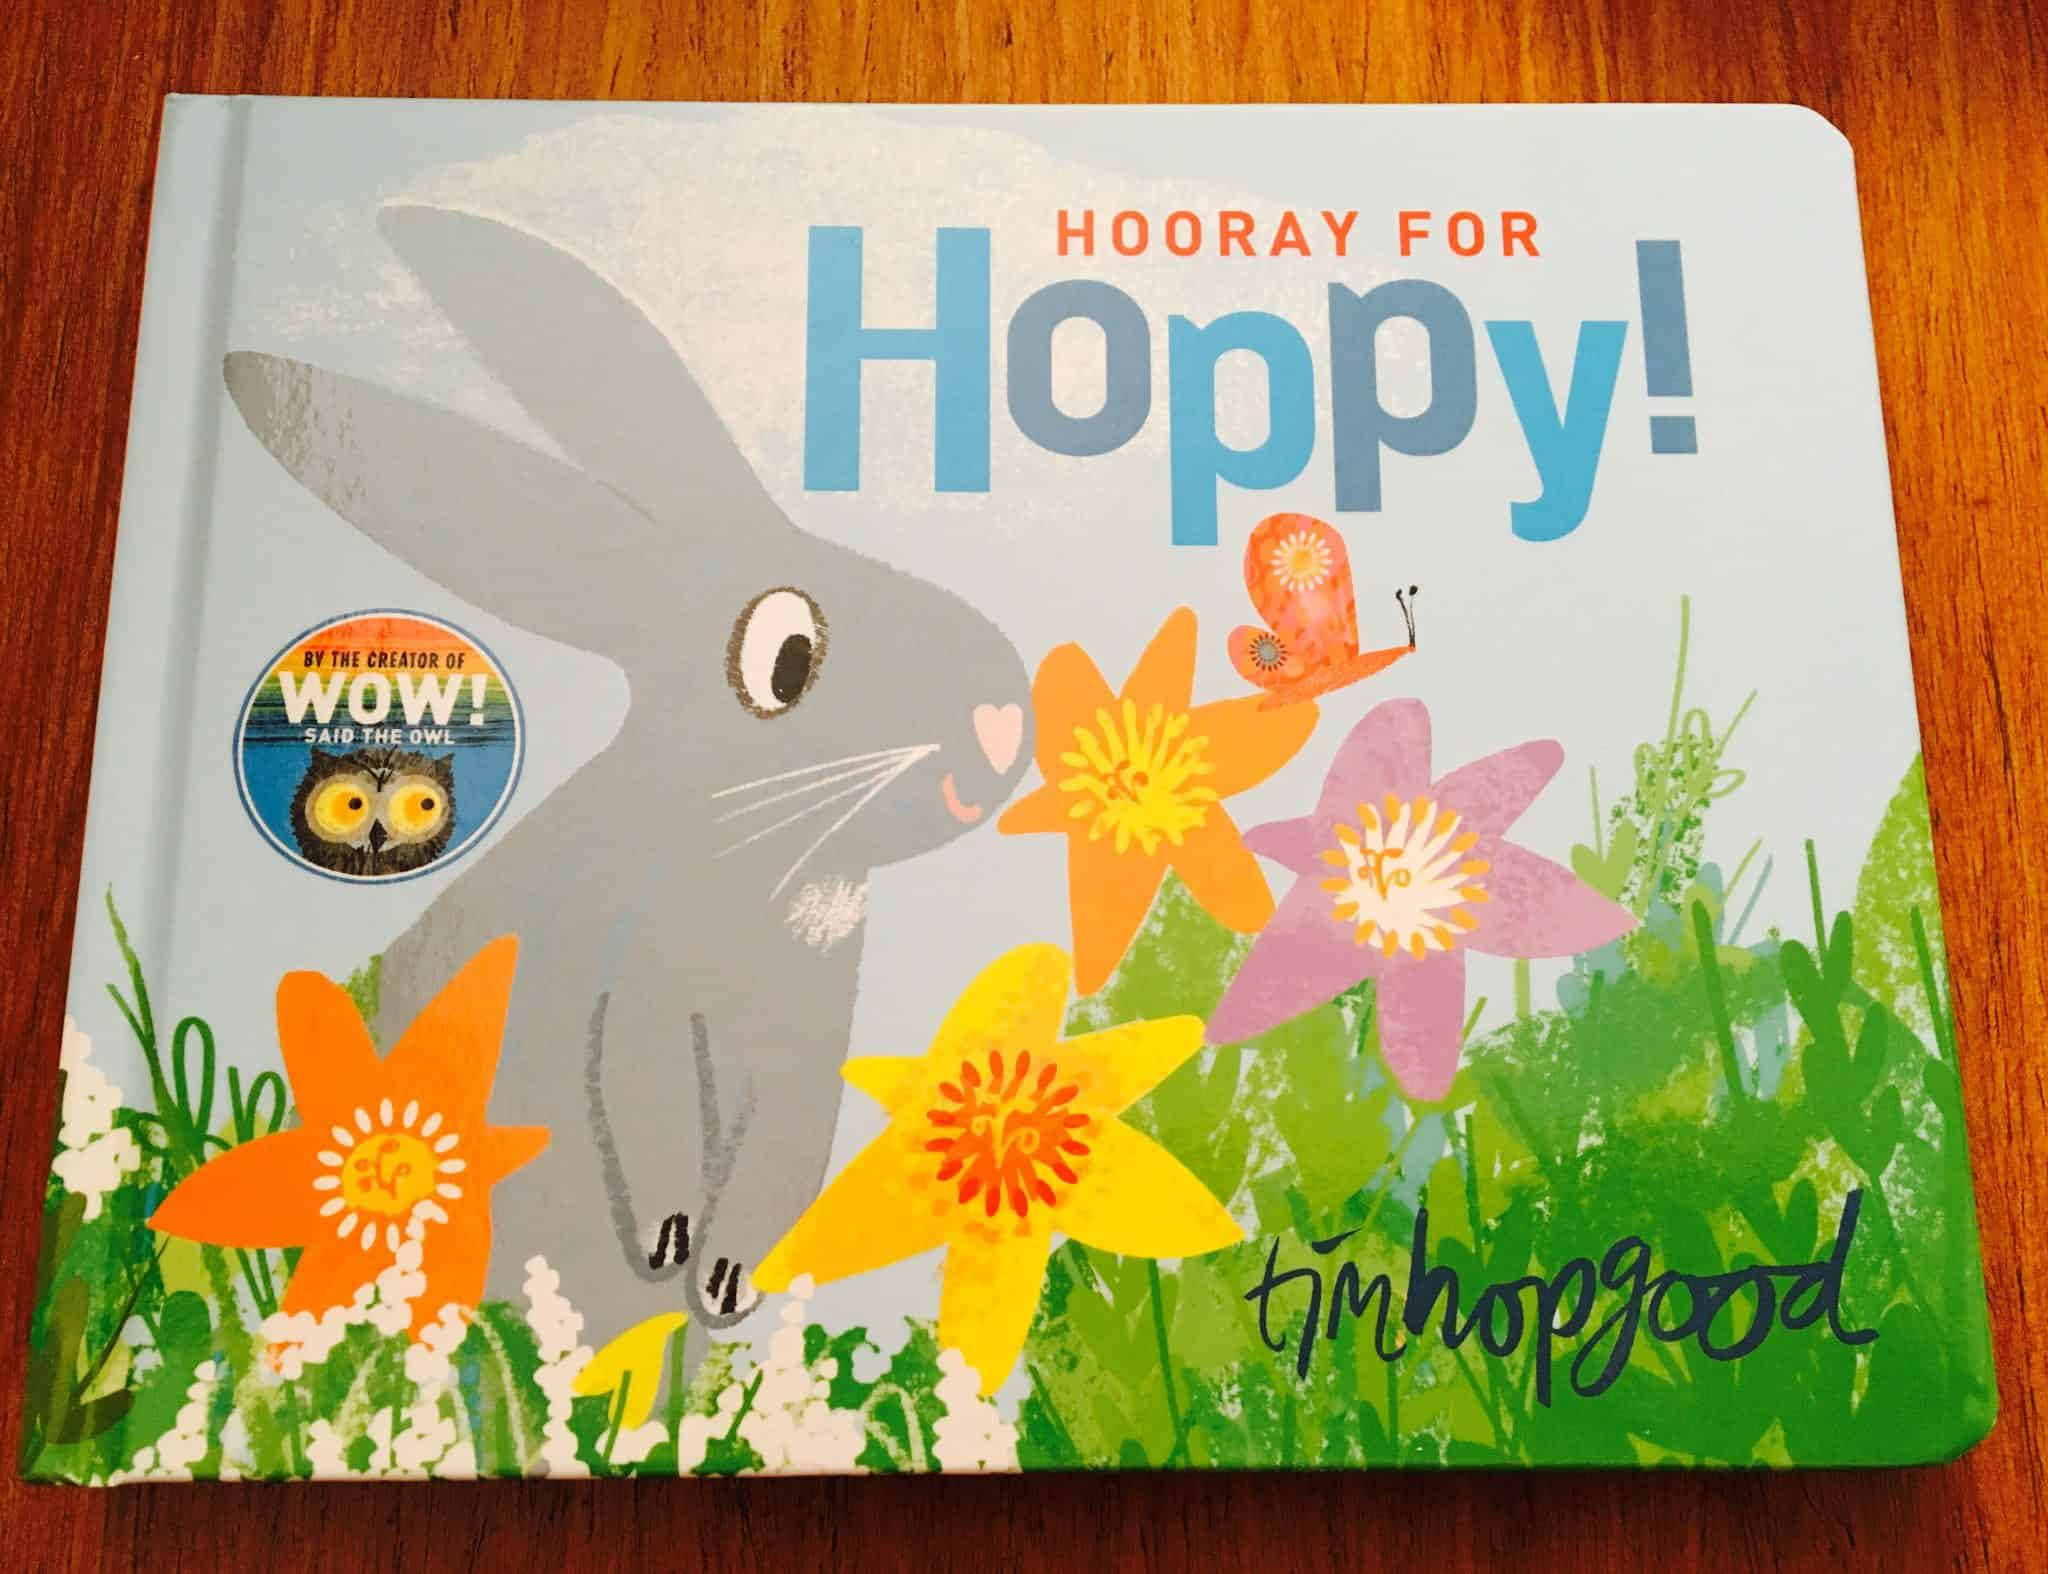 Horray for Hoppy! by Tom Hopgood